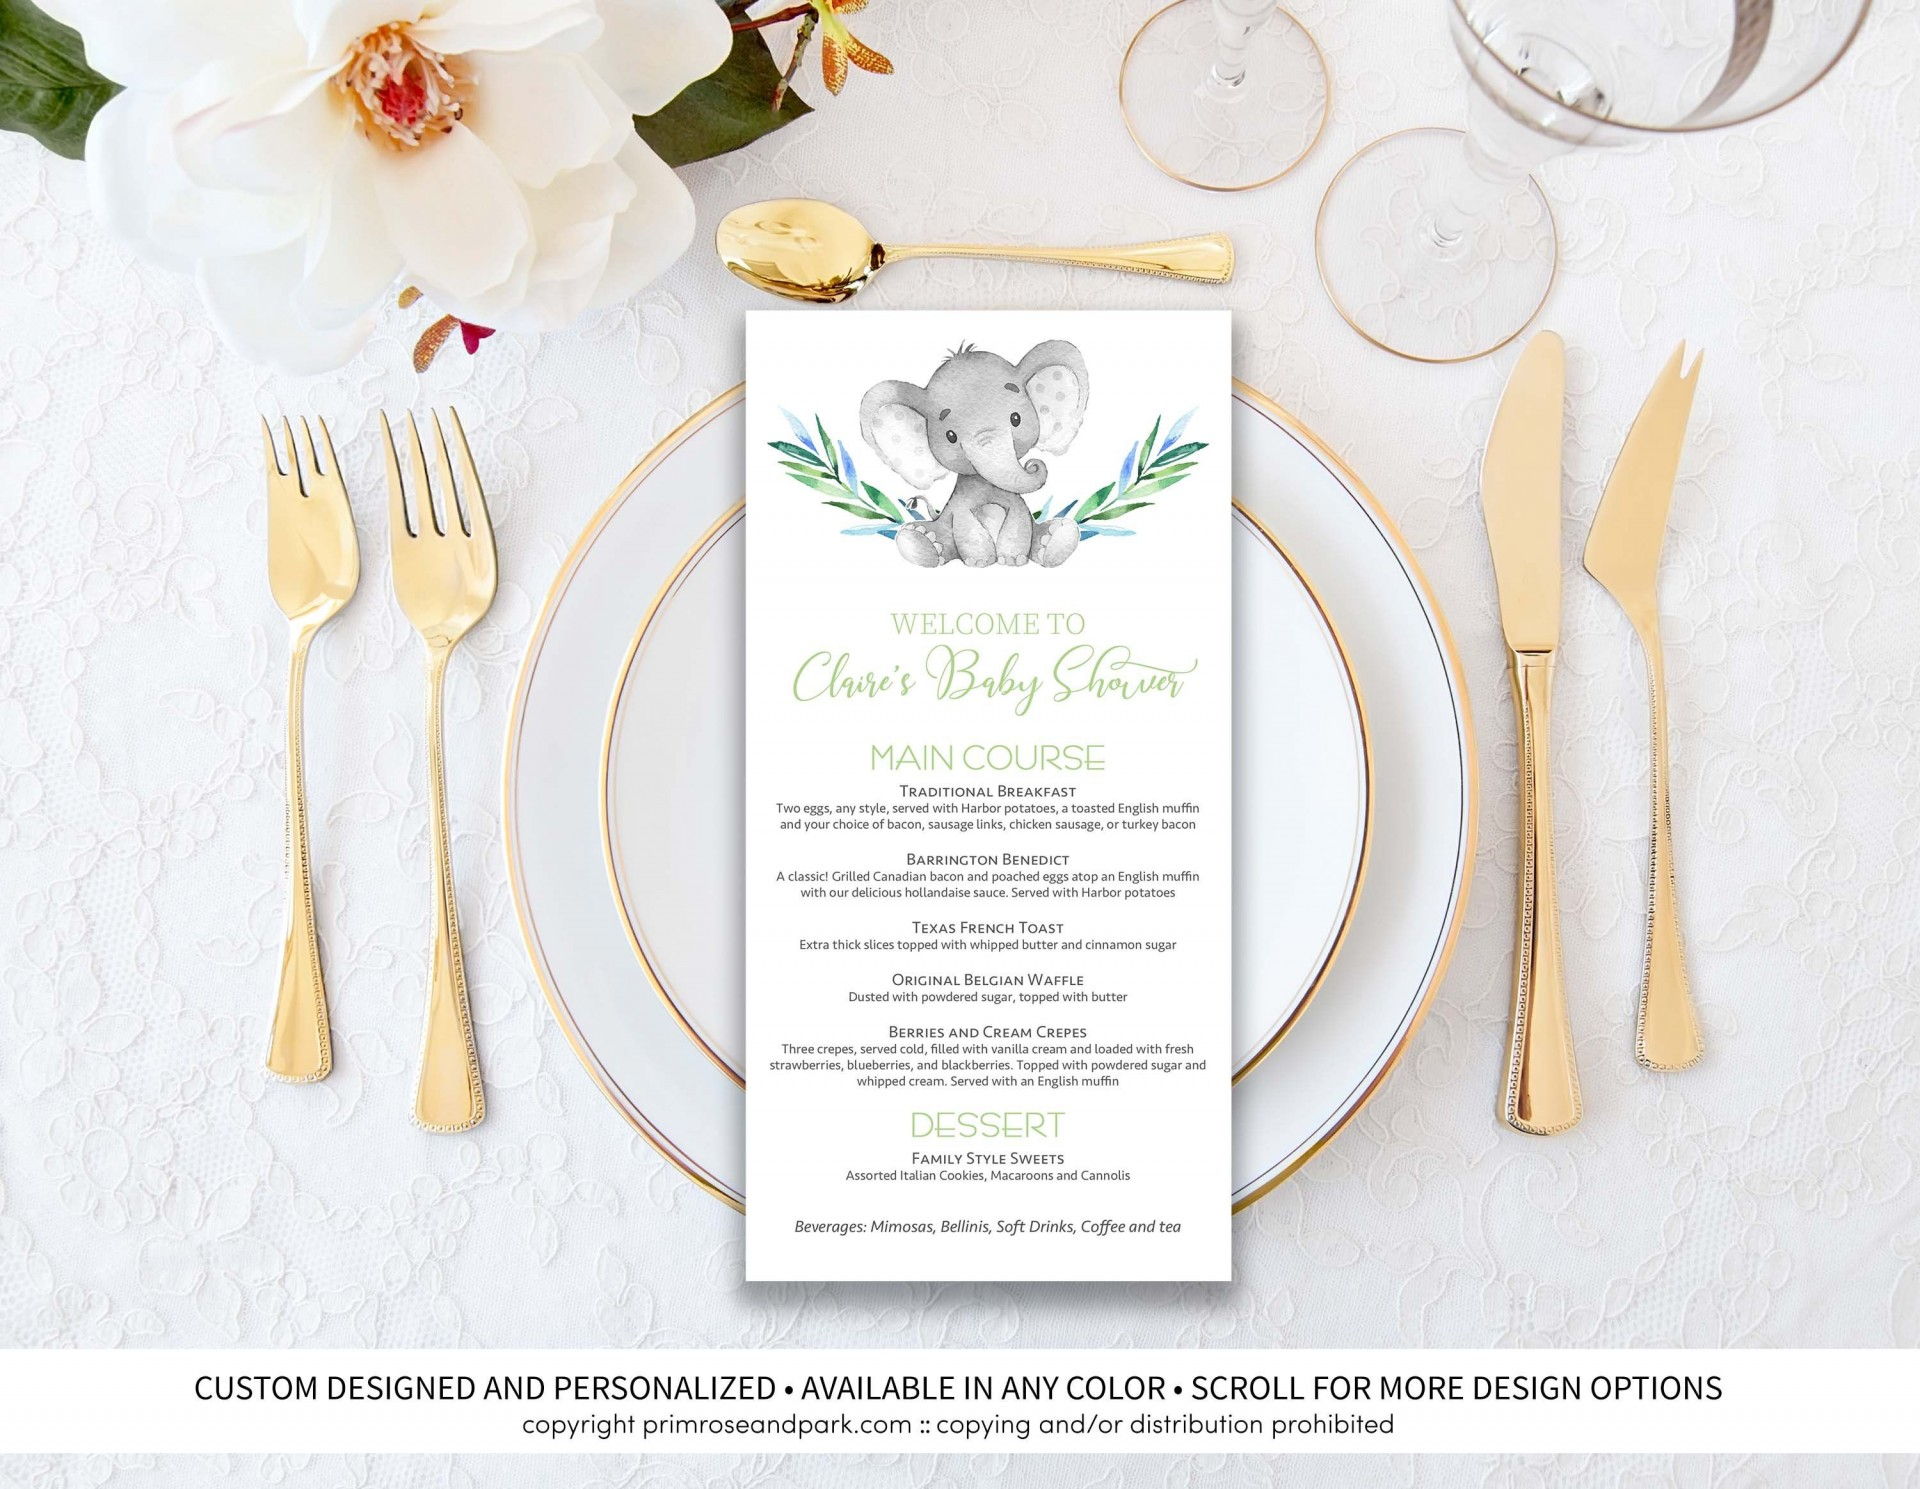 010 Stunning Baby Shower Menu Template Idea  Templates Lunch Printable Downloadable1920